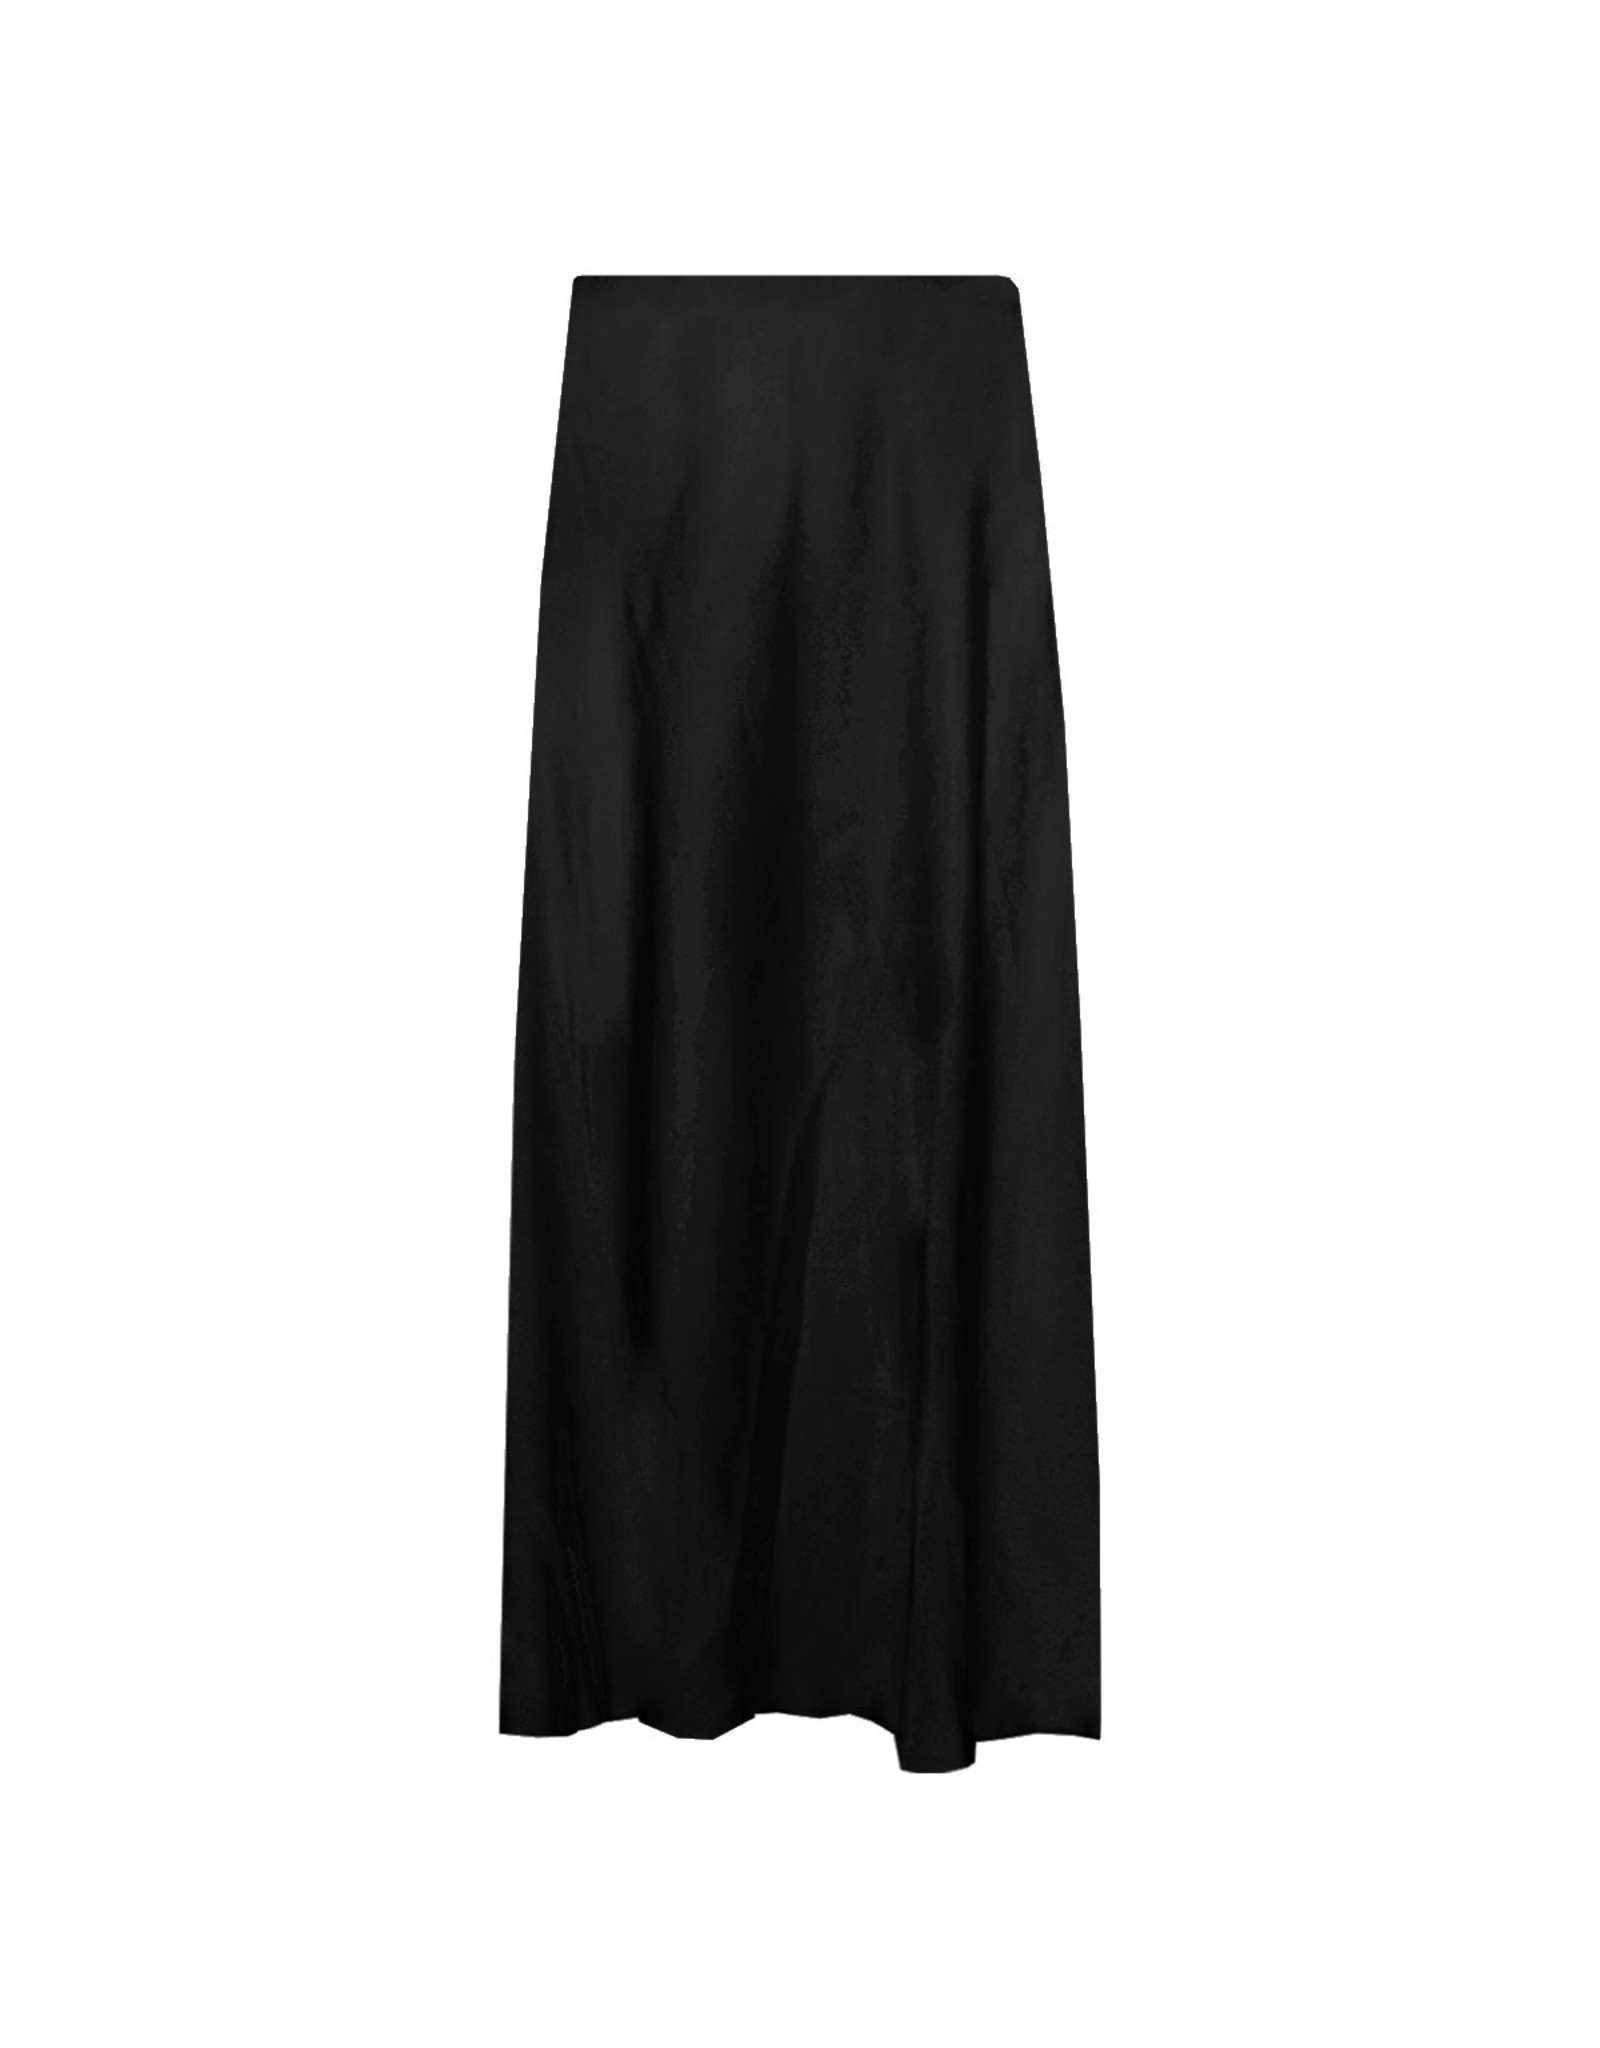 Imperium Looks SILK SKIRT BLACK